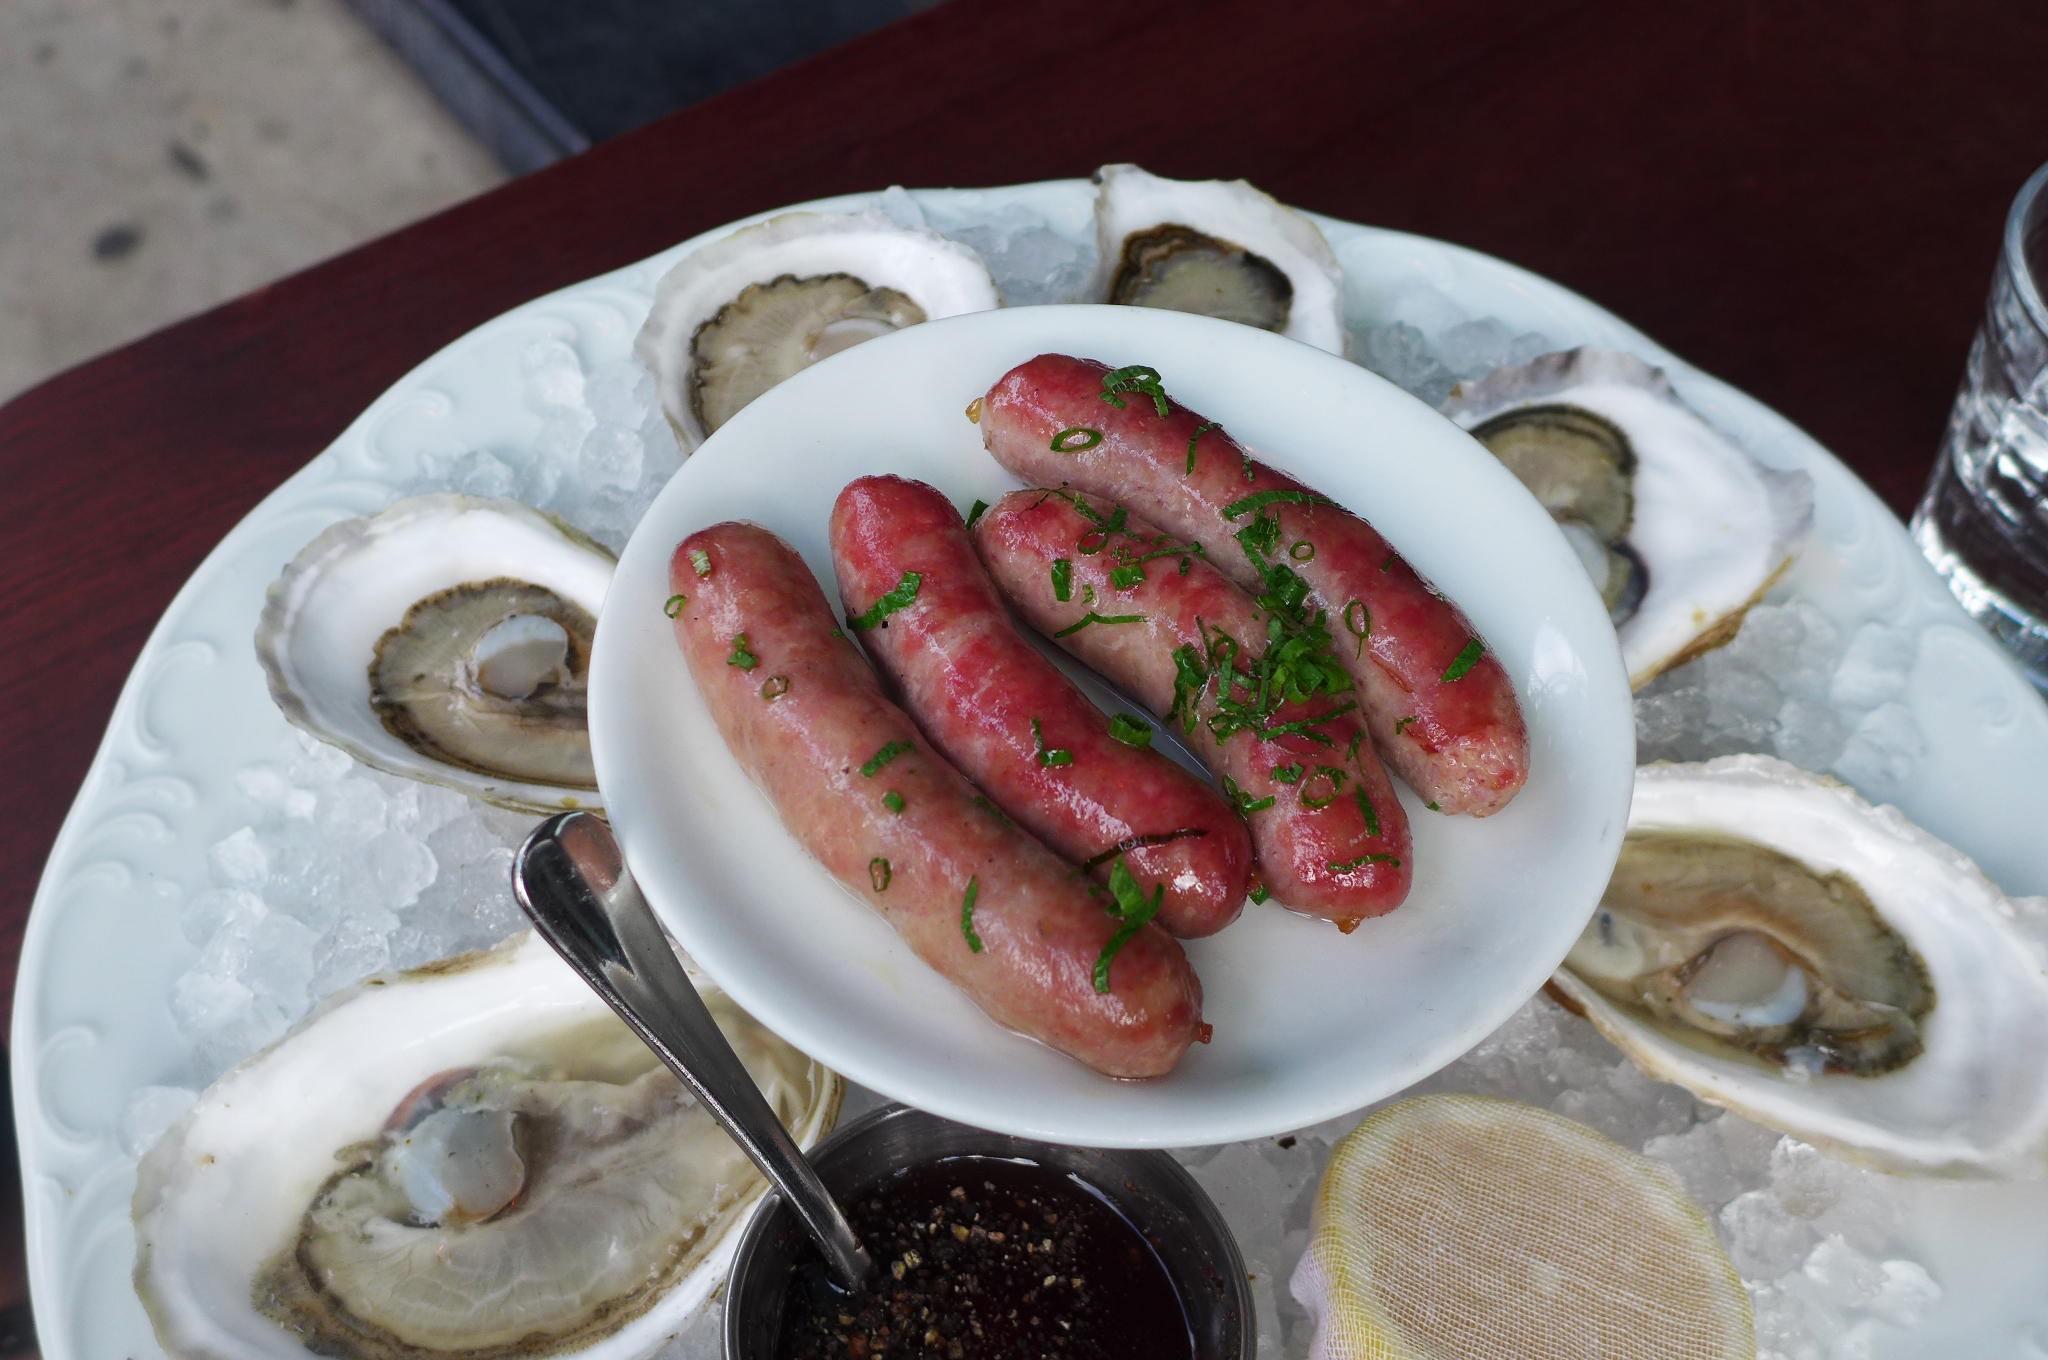 A tray of six raw oysters on ice with a small plate of sausages balanced on top.